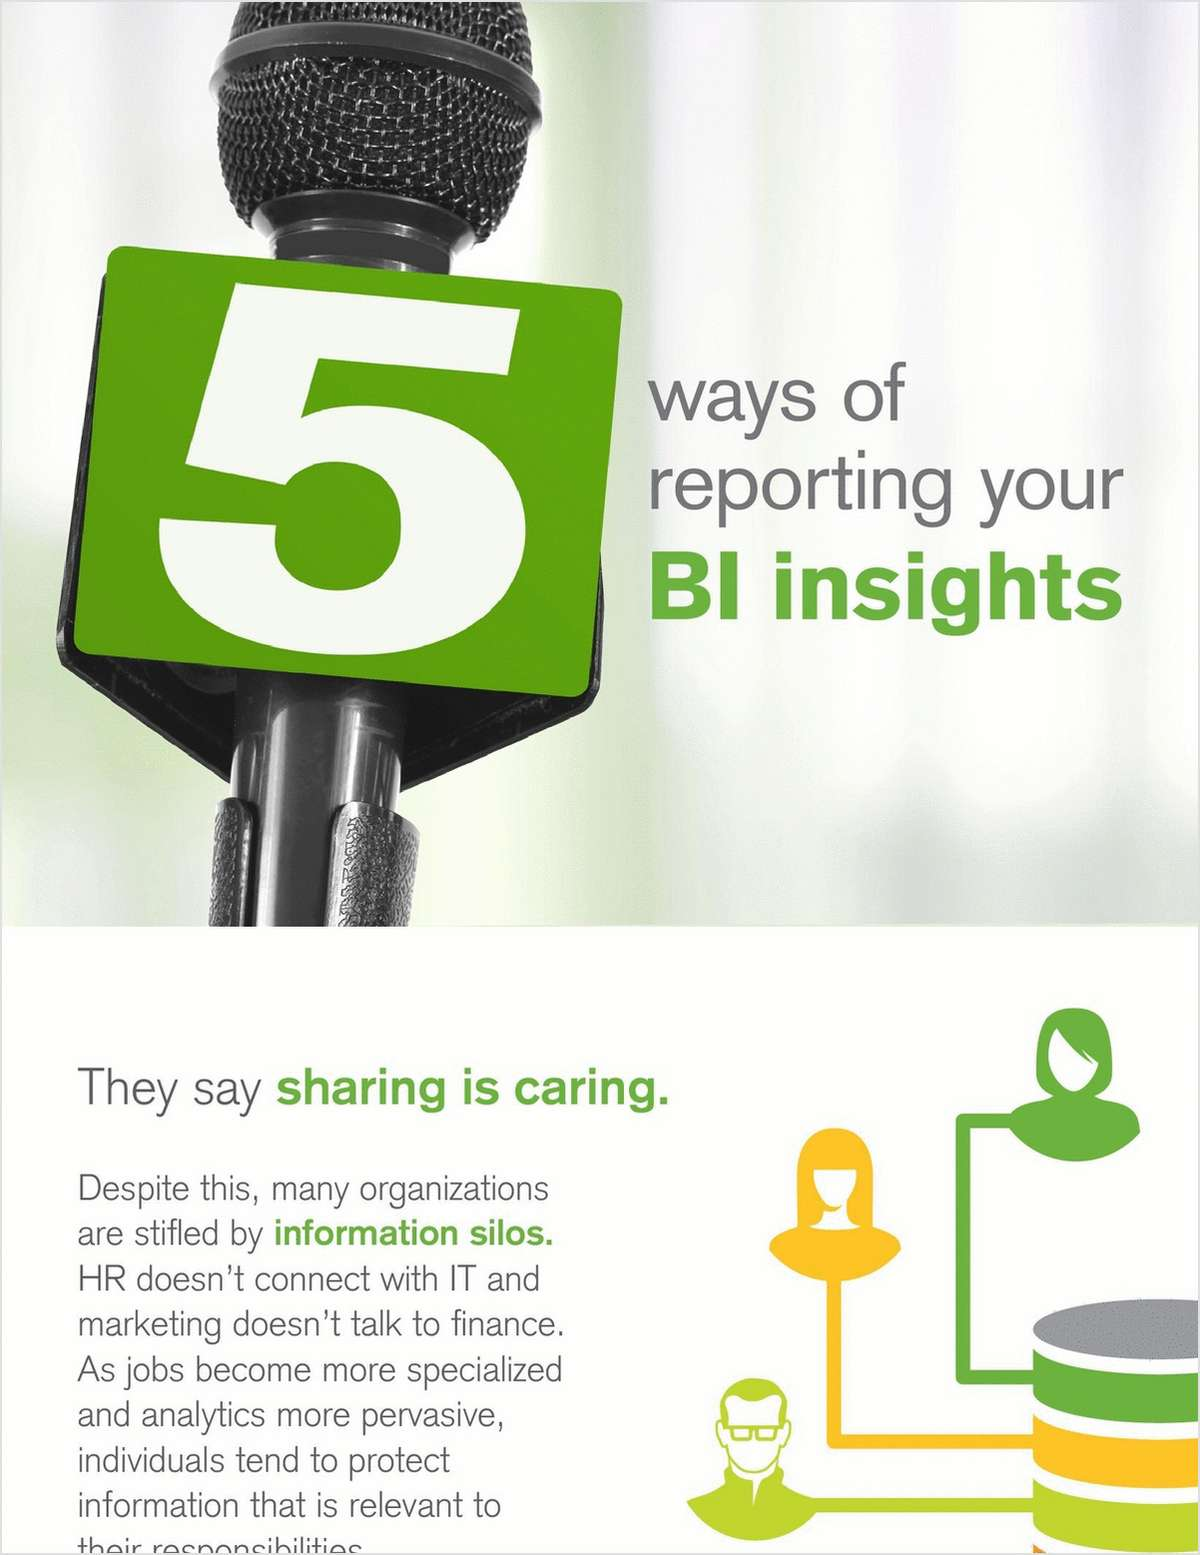 5 Ways of Reporting Your BI Insights